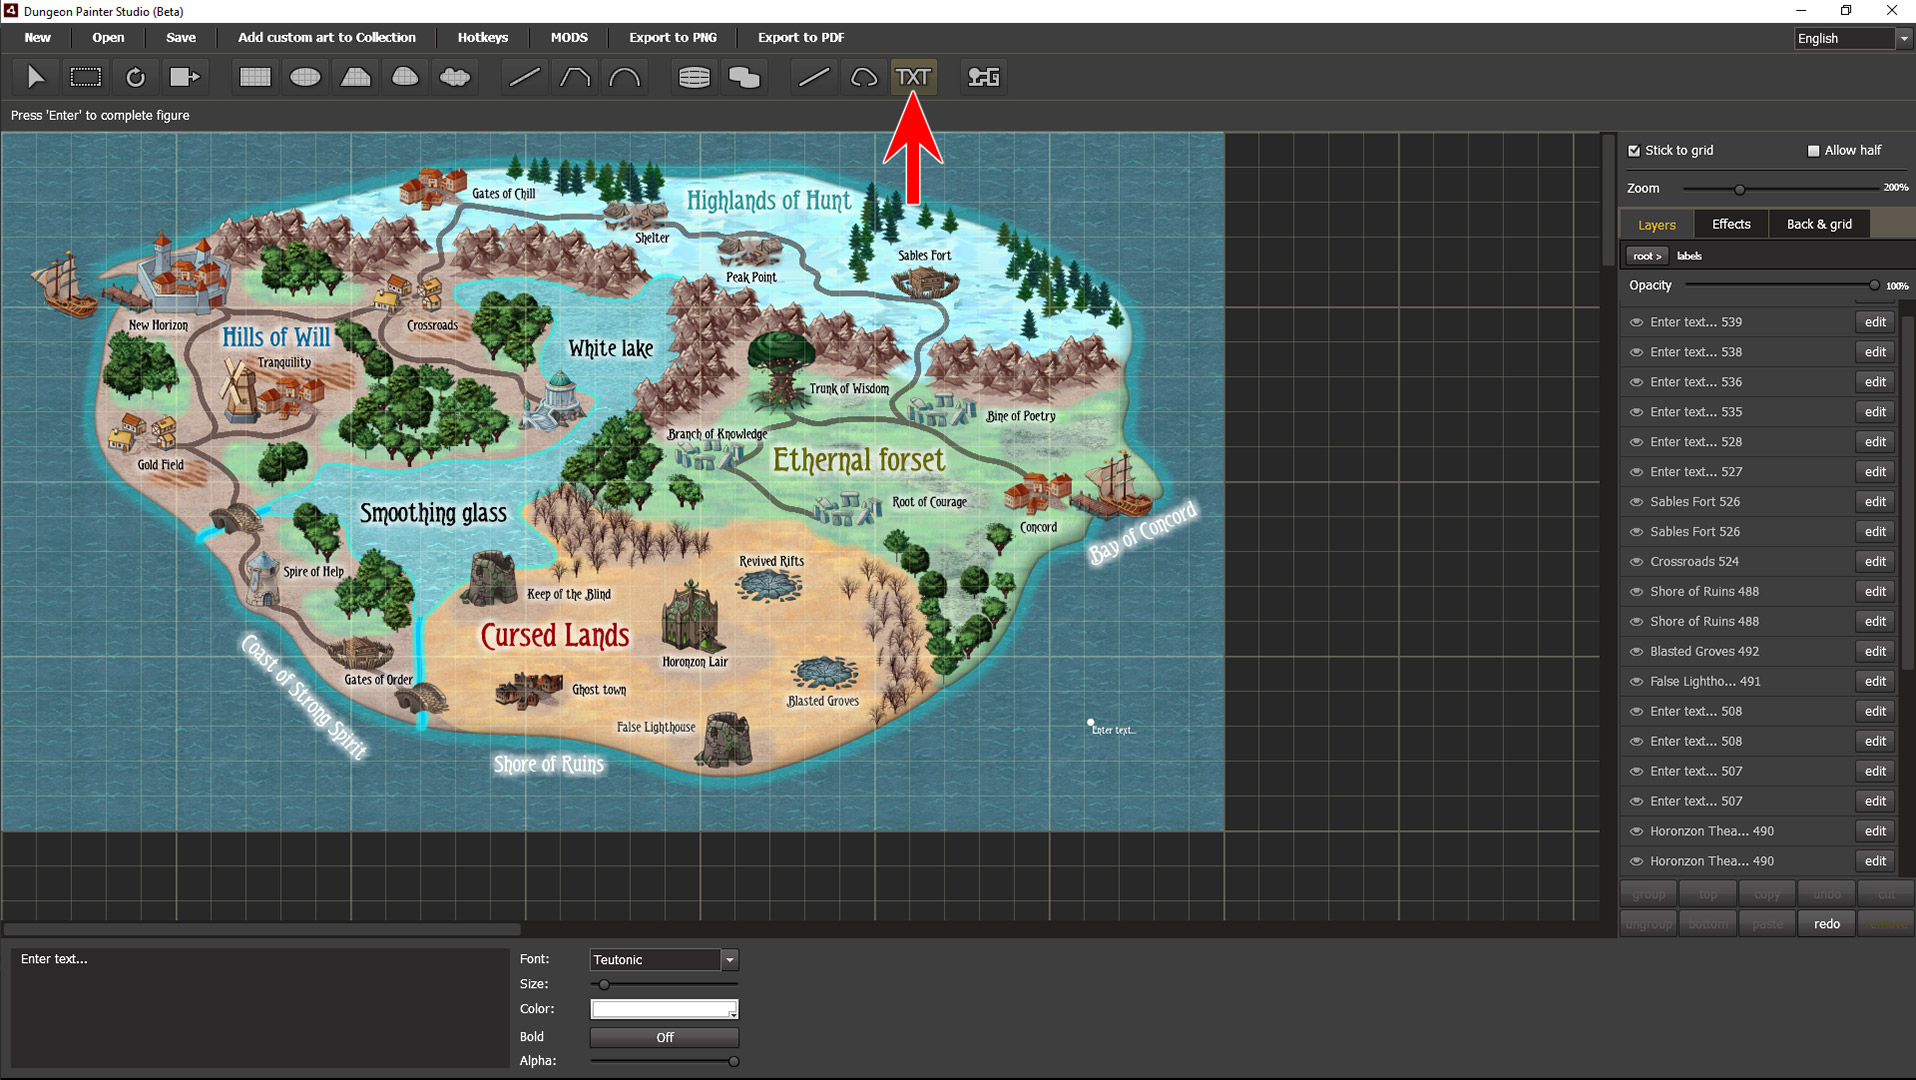 Steam community guide world map creation guide go inside island group and use terrain brush tool to comuflate transitions between biomes paint marshes and grass under the forest gumiabroncs Gallery